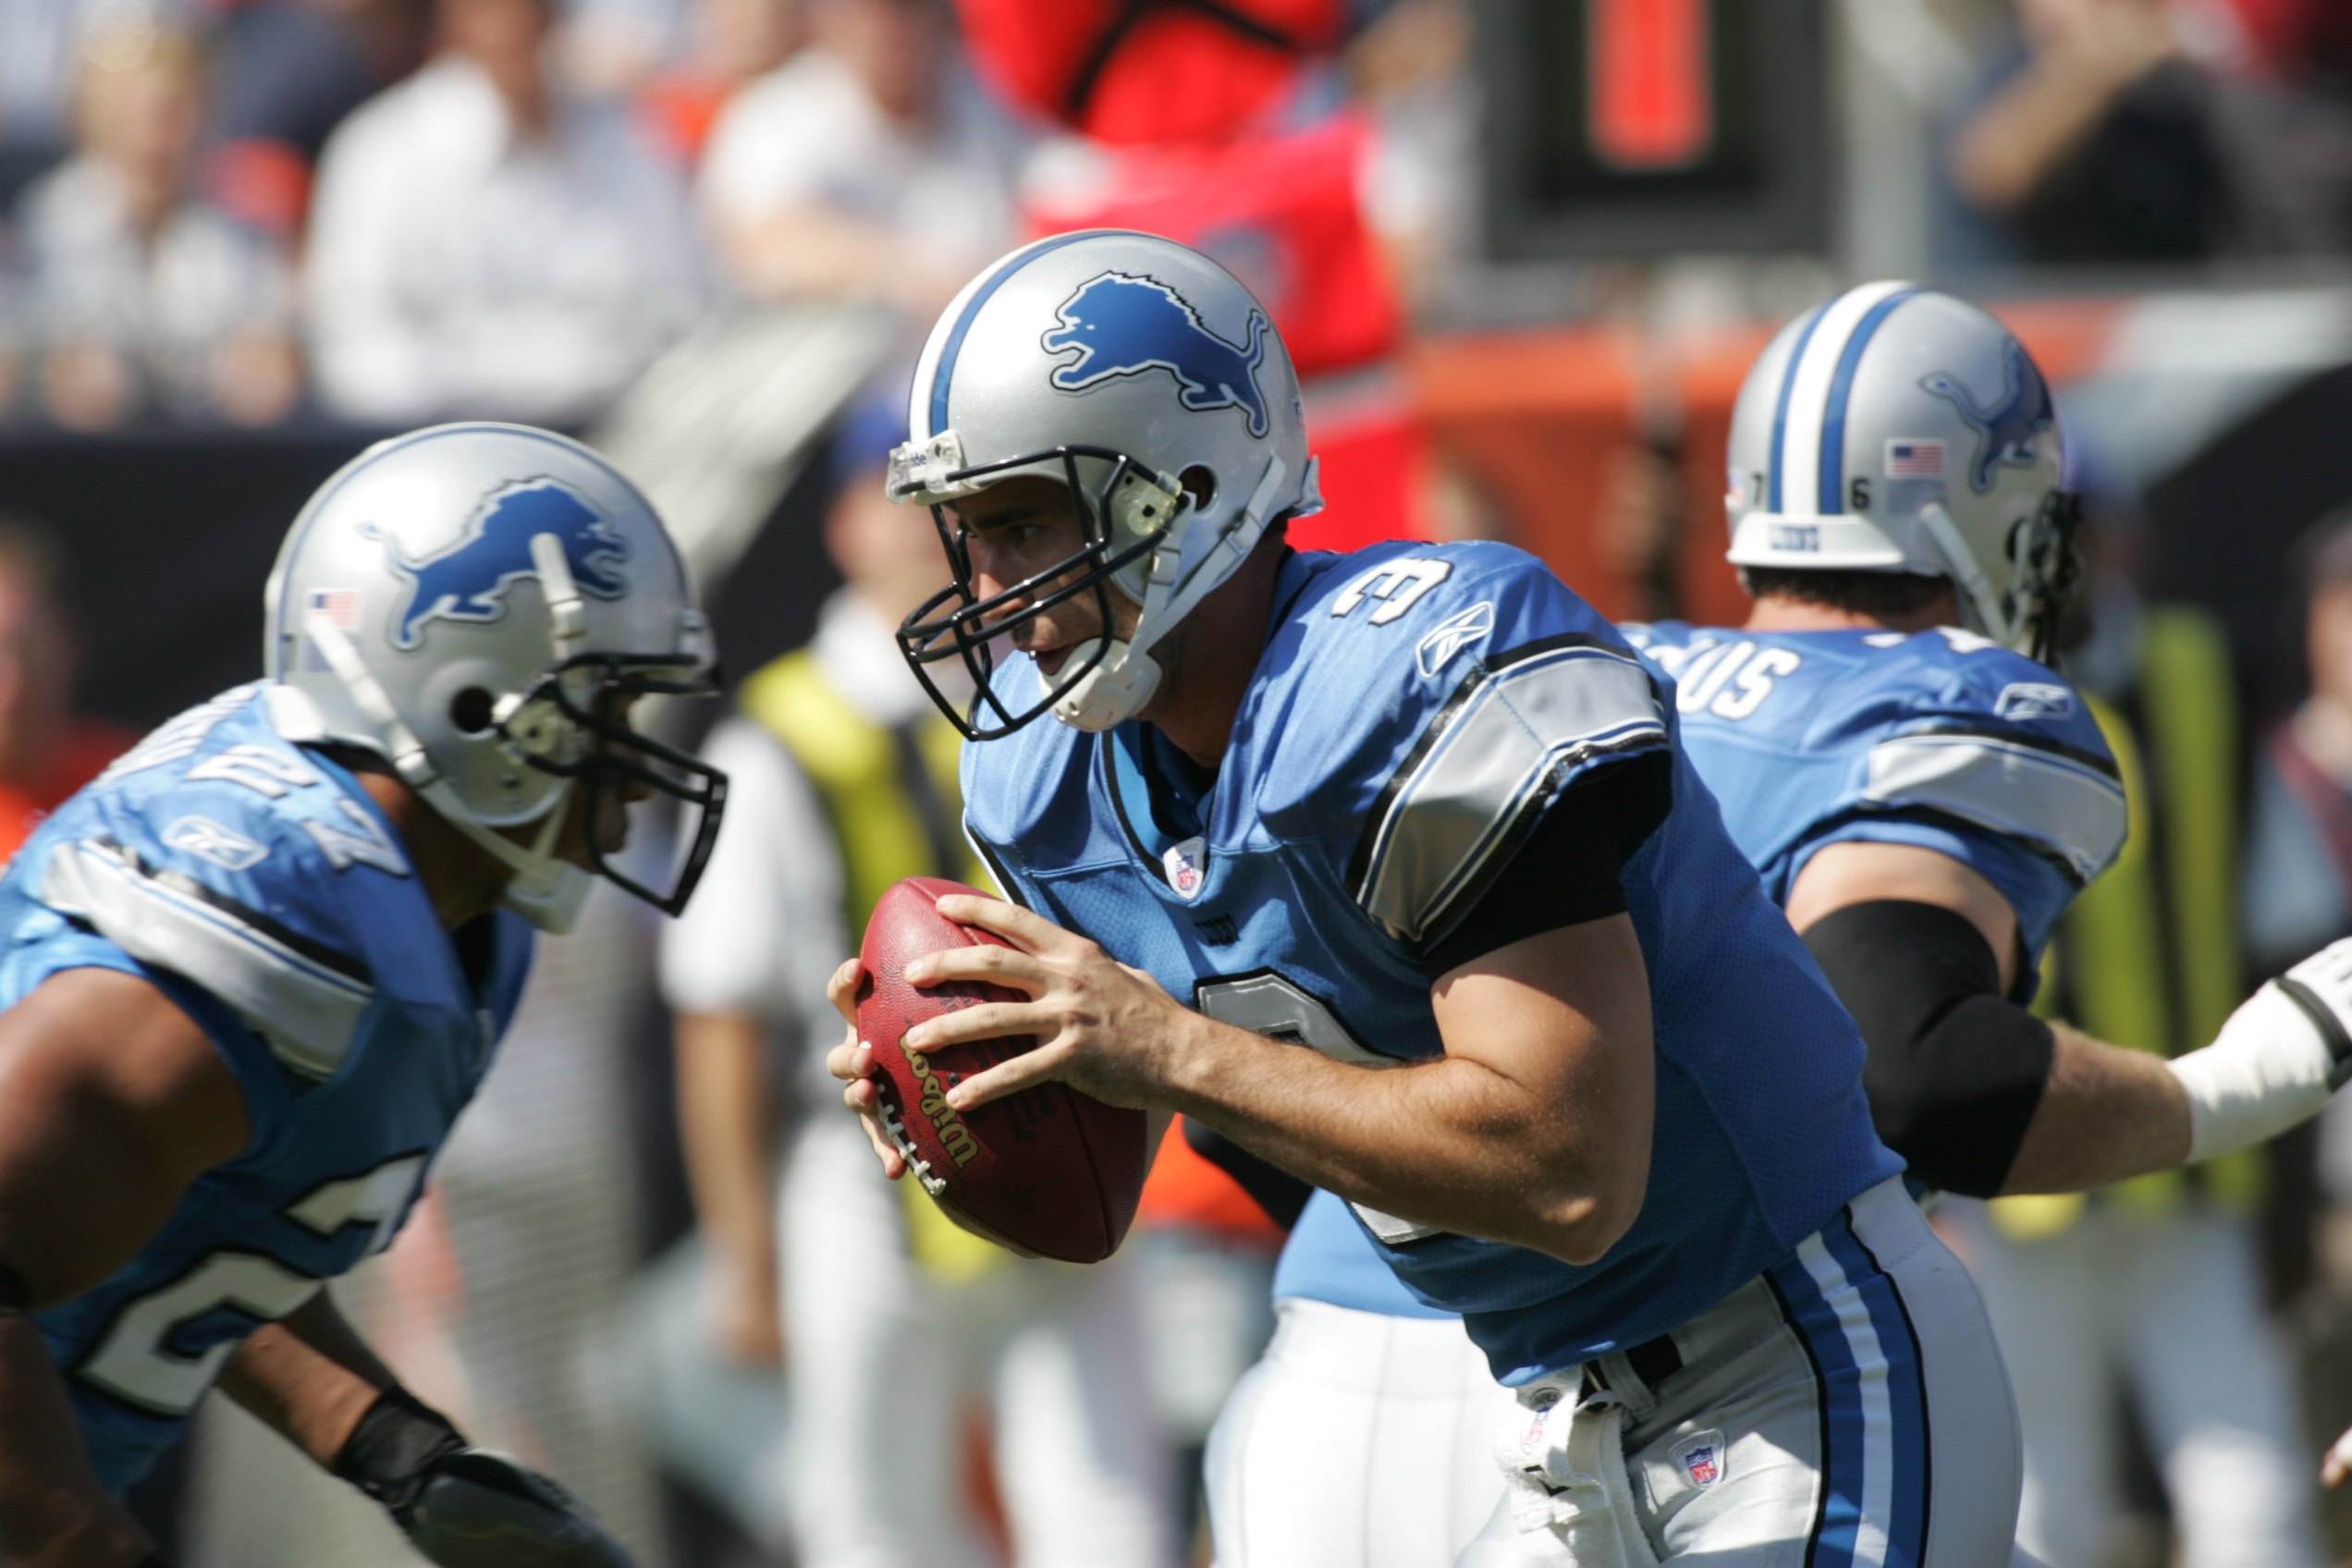 Joey Harrington was depressed when he was playing for the Detroit Lions.